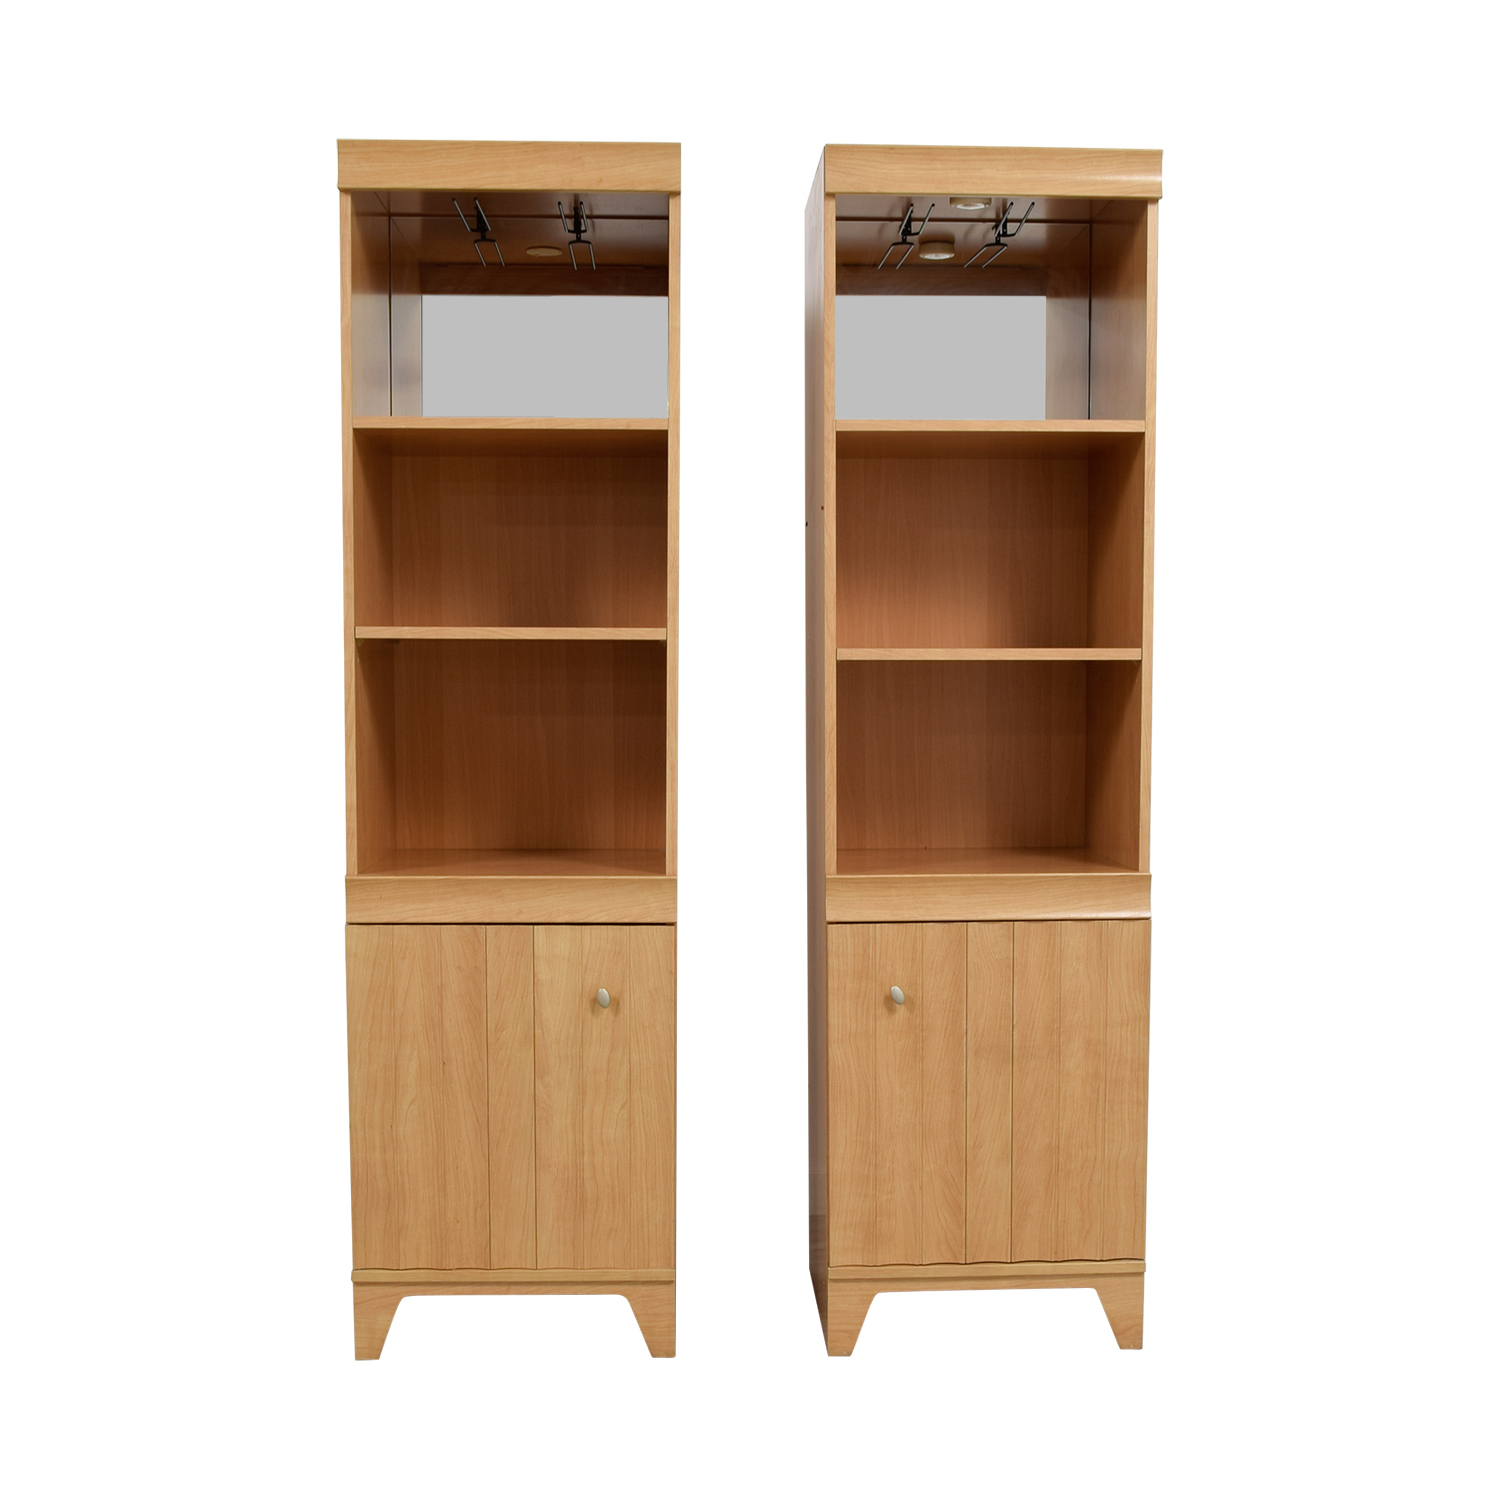 Bookshelves with Mirror on Top Shelf and Storage / Cabinets & Sideboards